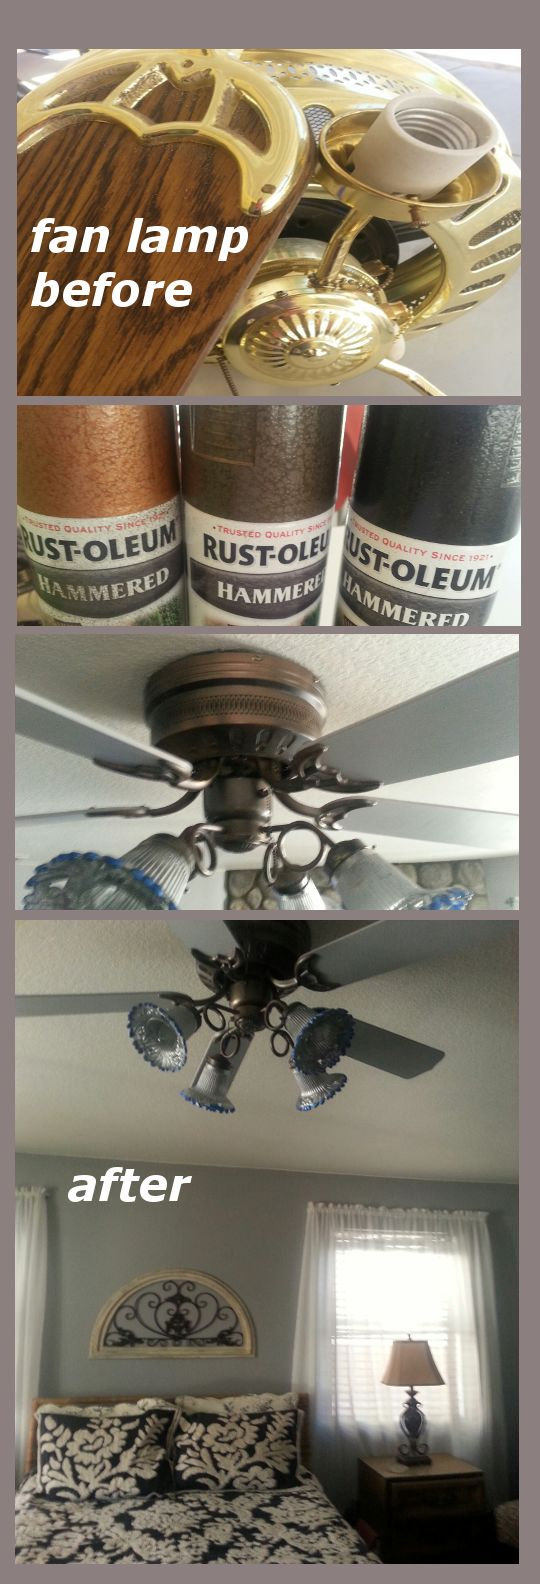 no money for new fan lamp but I had hammered spray paint from another project (shower rod and rings) which I wish I did a before & after pic. I painted fan blades gray same as my wall. Using hammered paint i just tried using each color to get the effect I was looking for. Happy with the results!